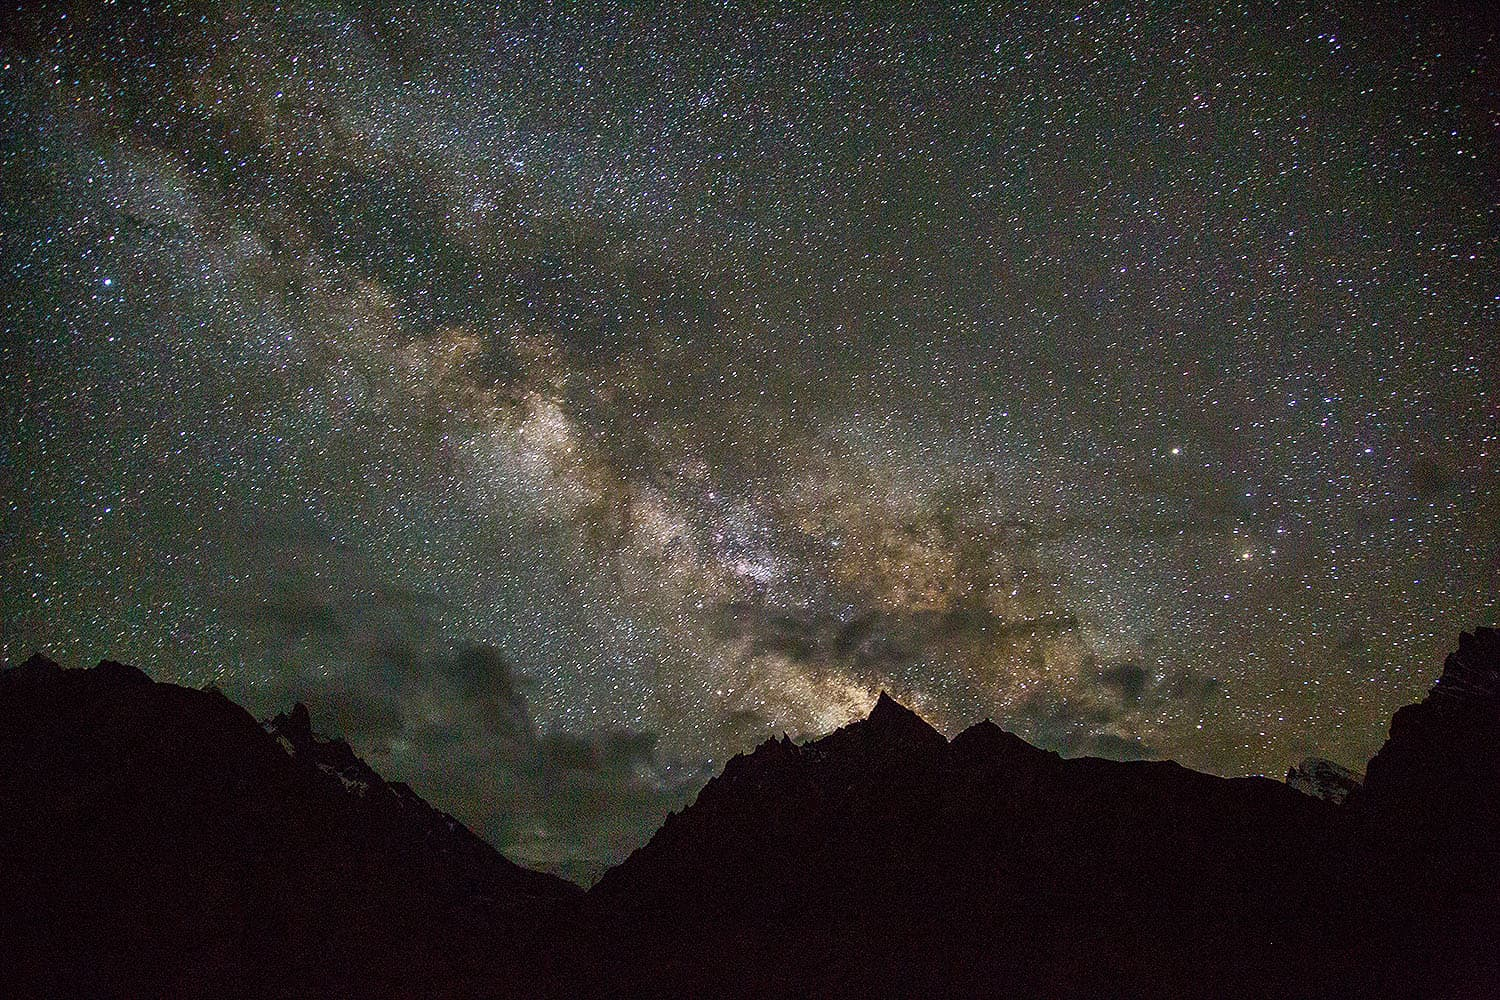 I woke up in the middle of the night and was awestruck when I looked at the sky. I immediately grabbed my camera to take this shot of the Milky Way from our Payu camp.